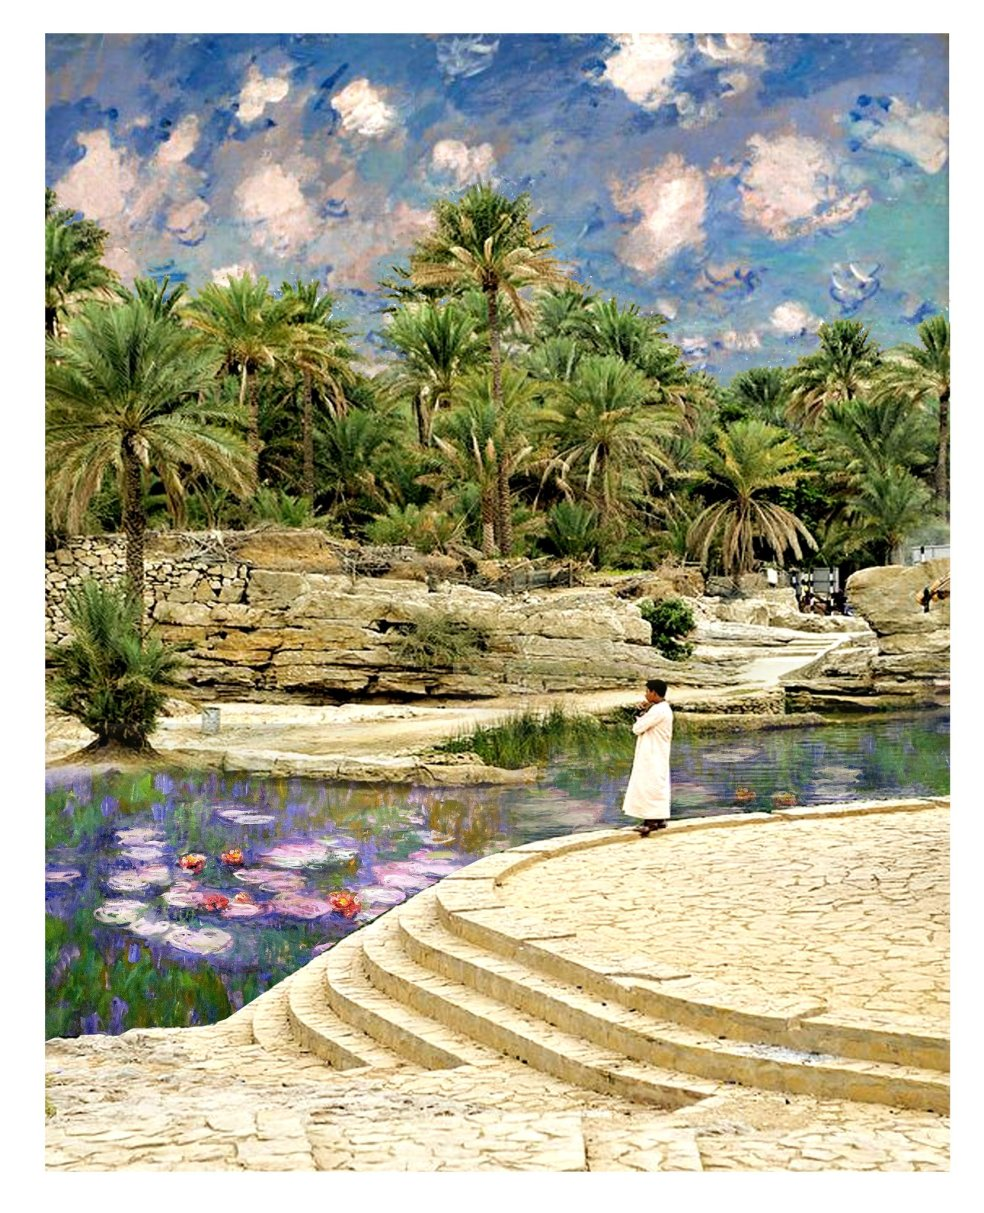 Kostis Grivakis - Monet's Water Lilies in Wadi Bani Khalid, Oman collage